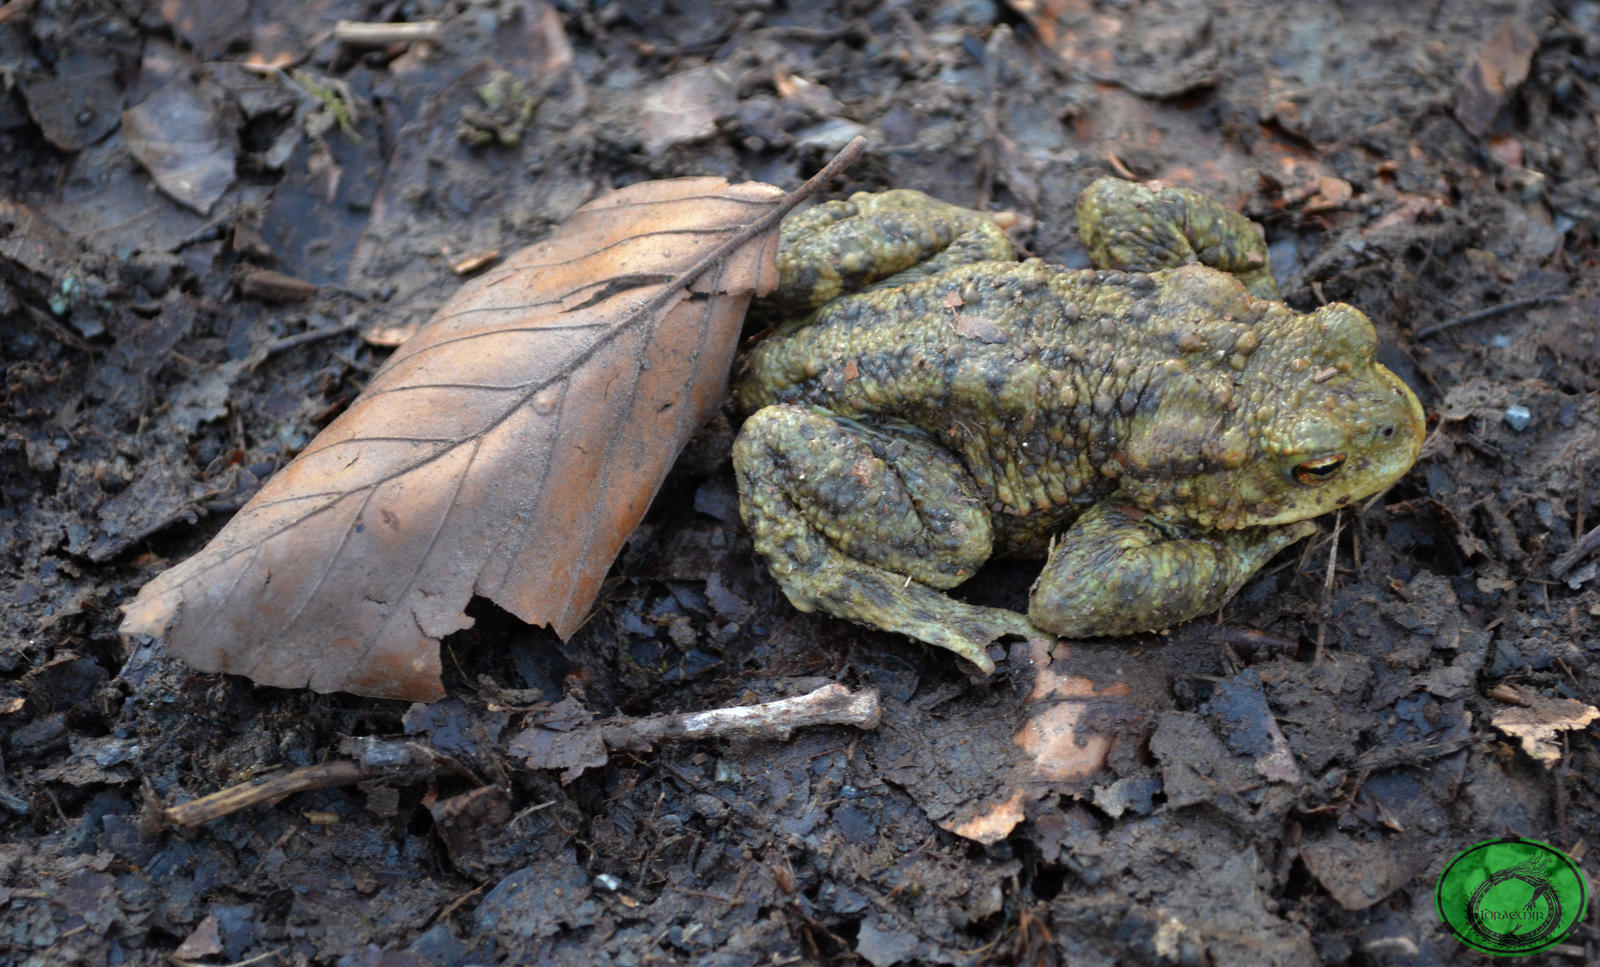 The Toad and the Leaf by Idraemir